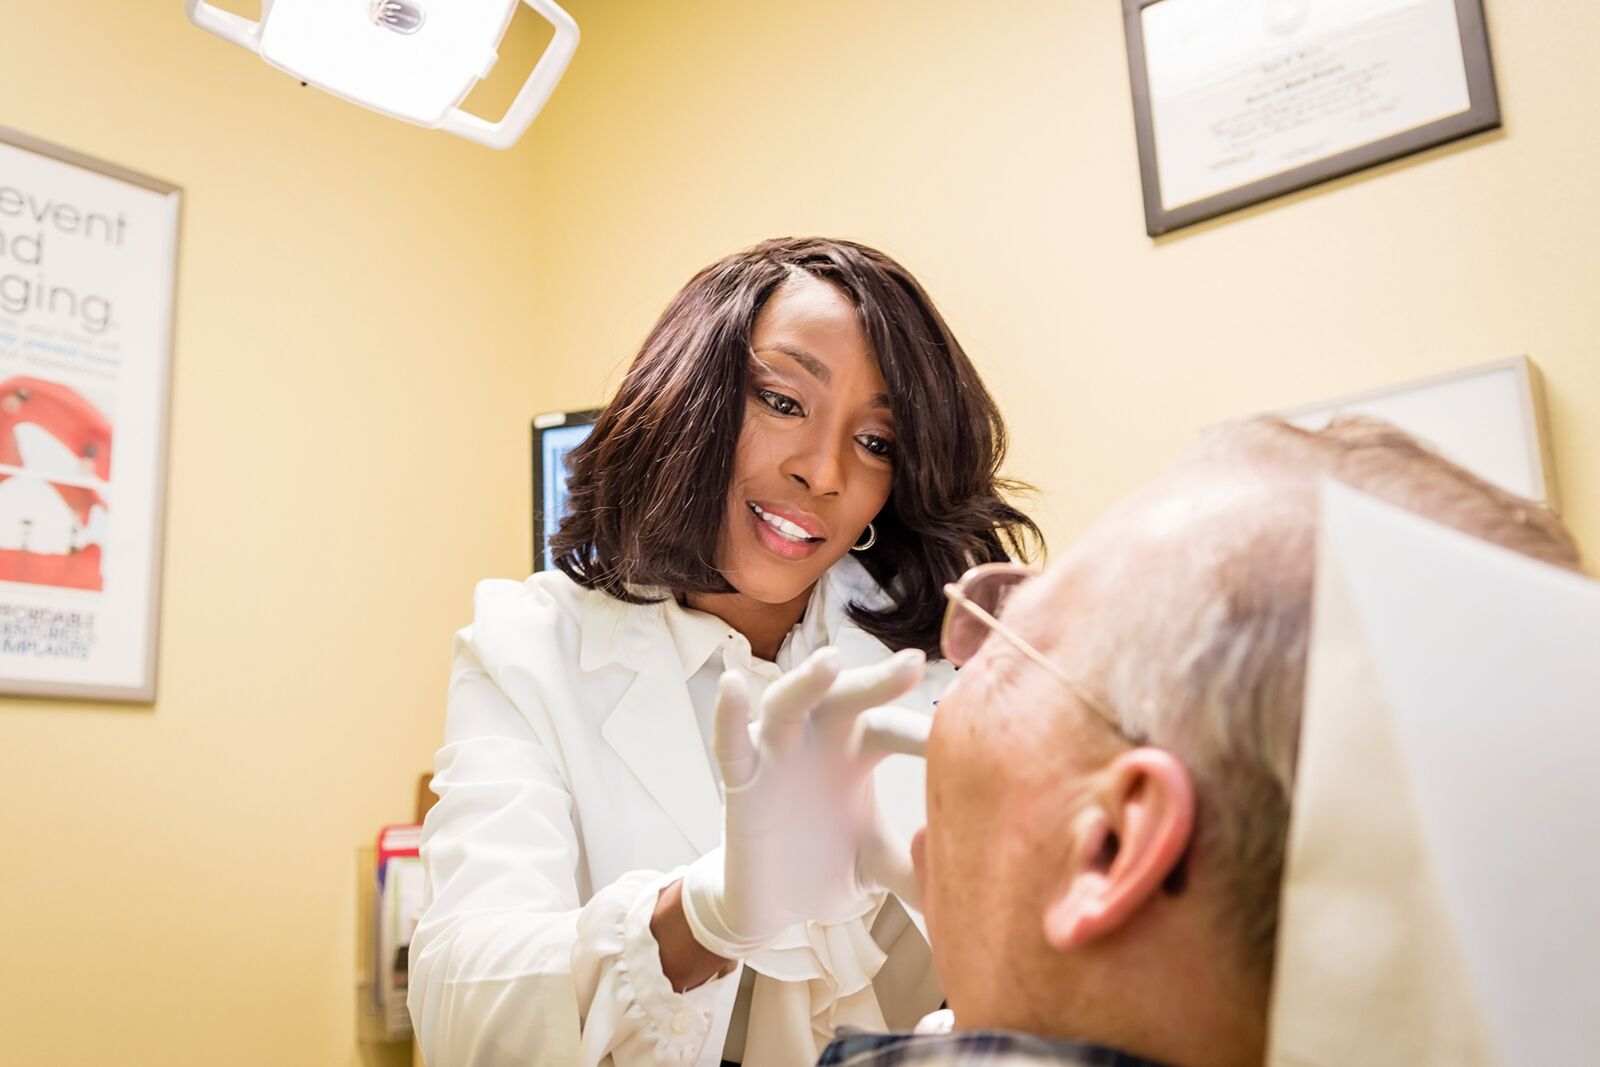 Dr. Adedoyin, an affiliated practice owner at AD&I uses her smile to put patients at ease.